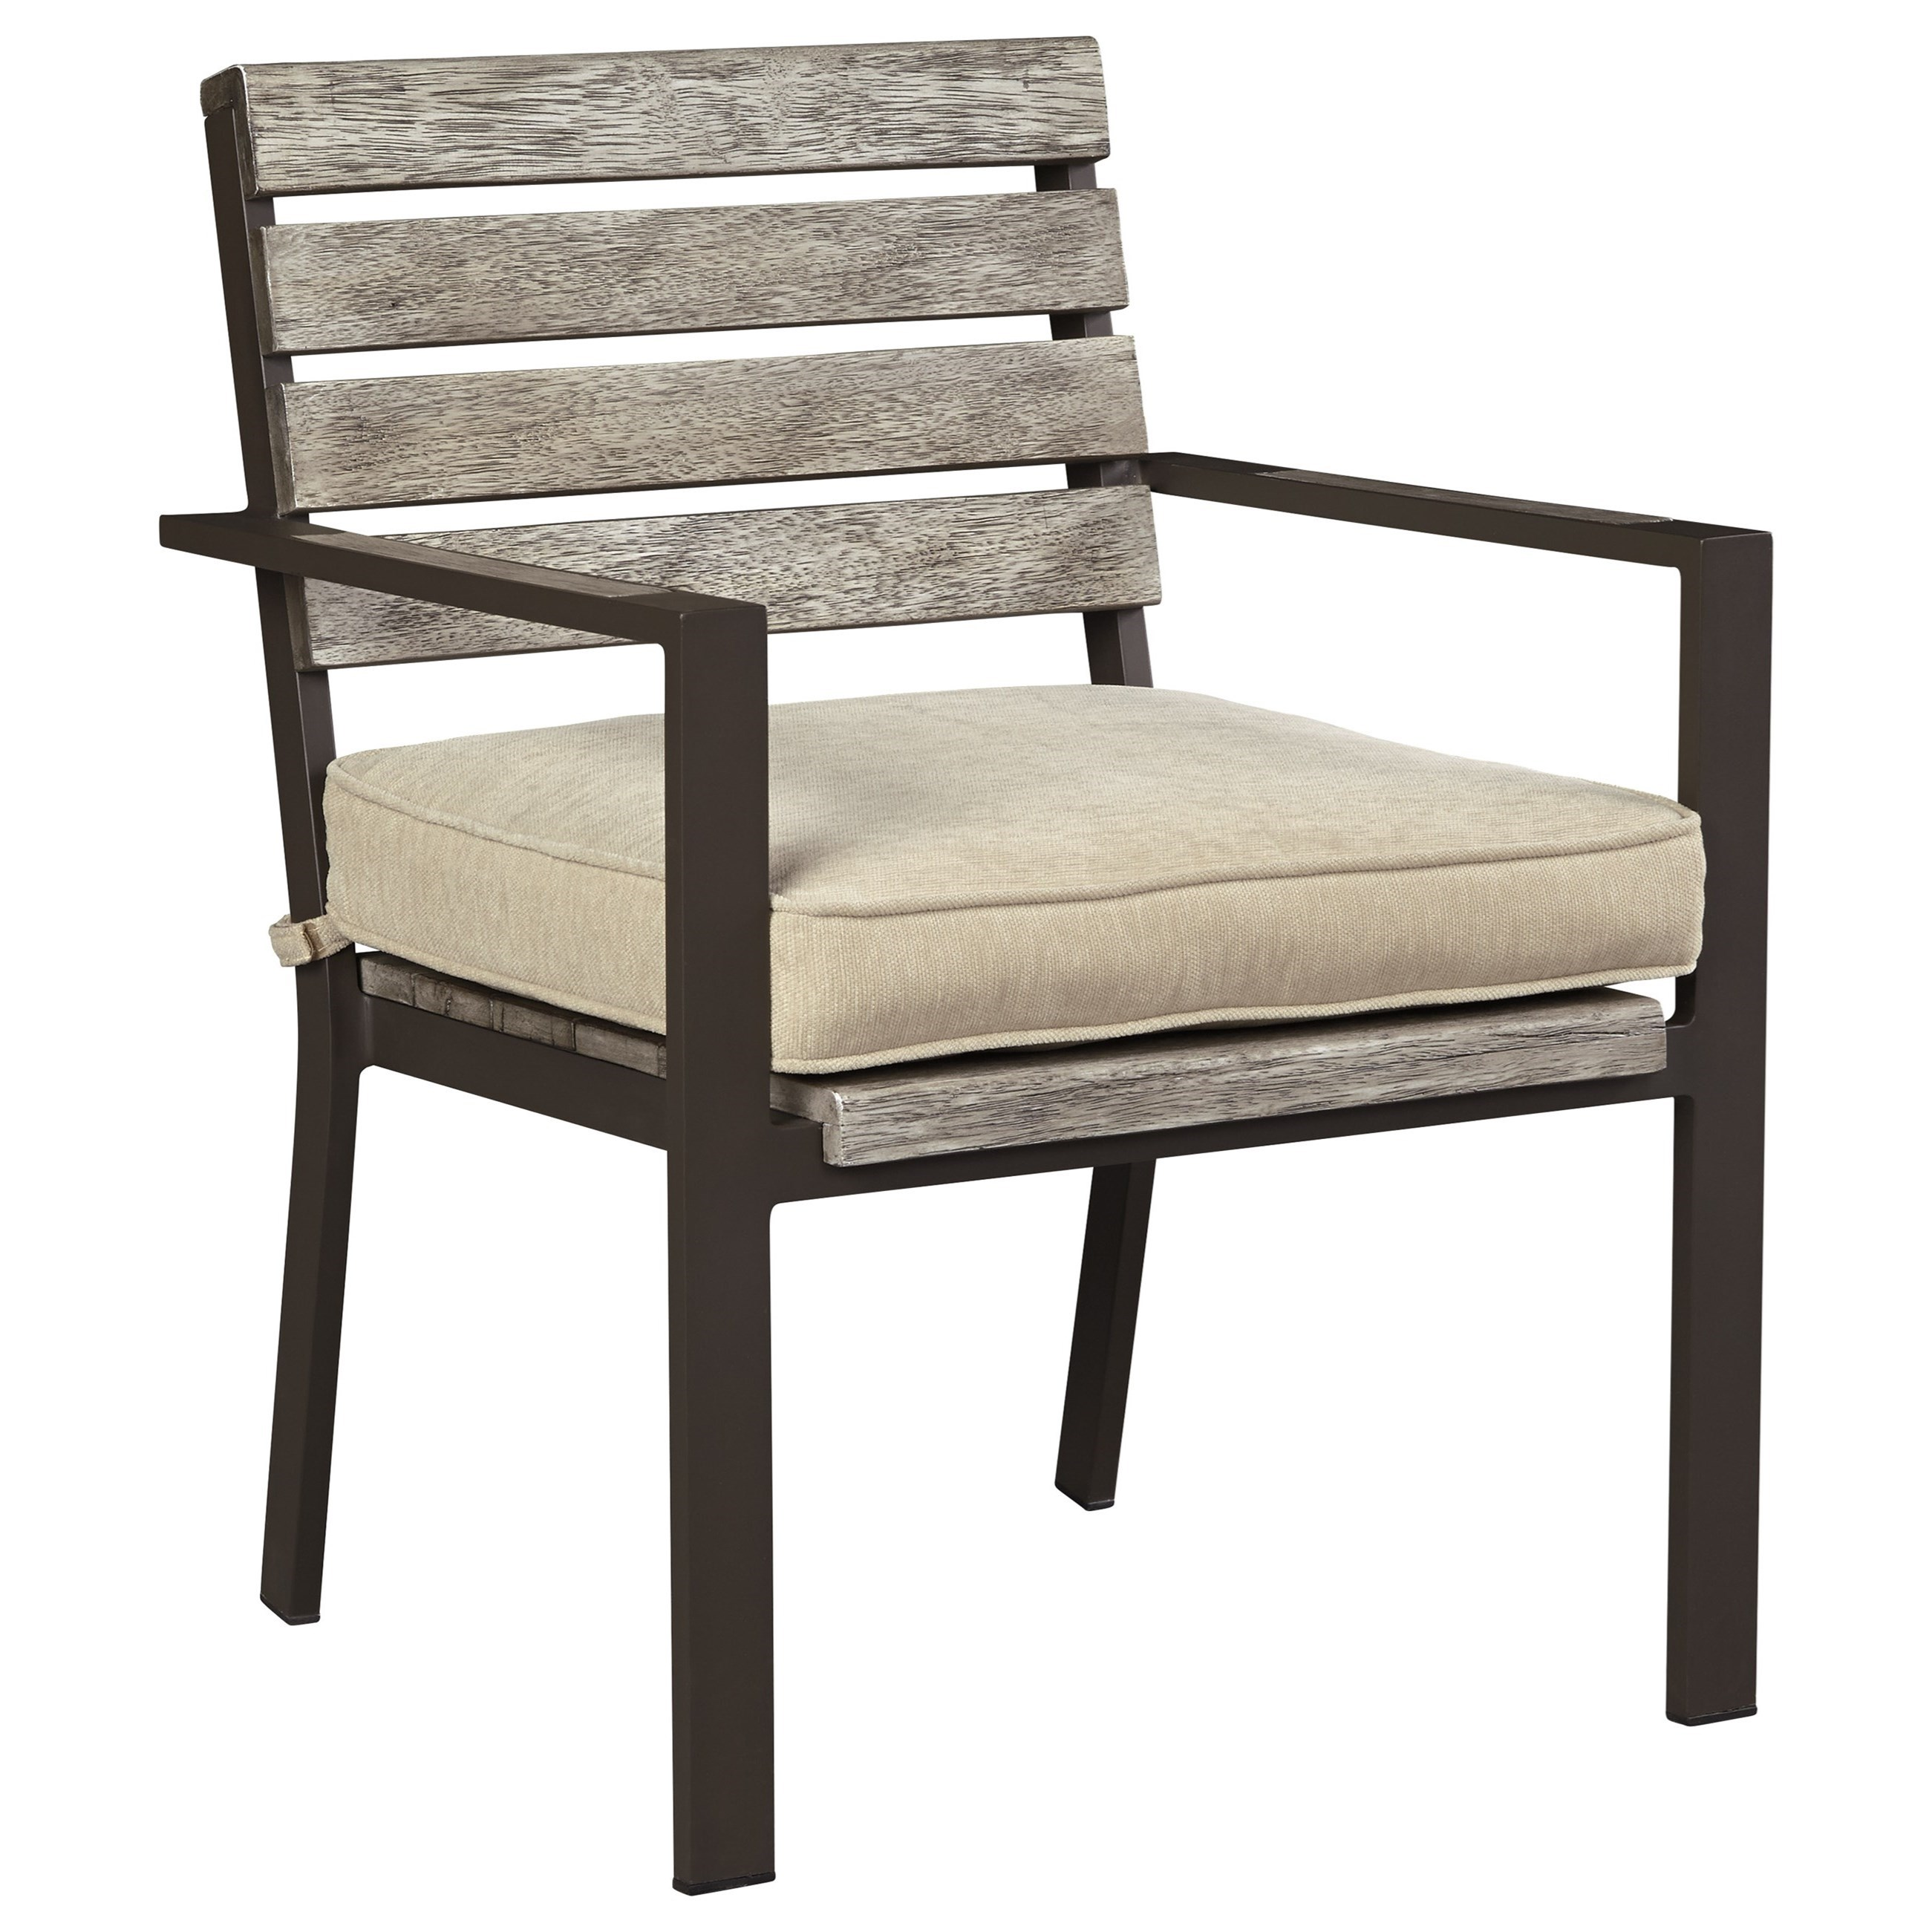 Ashley Signature Design Peachstone P655 601a Set Of 2 Outdoor Chairs With Cushion Dunk